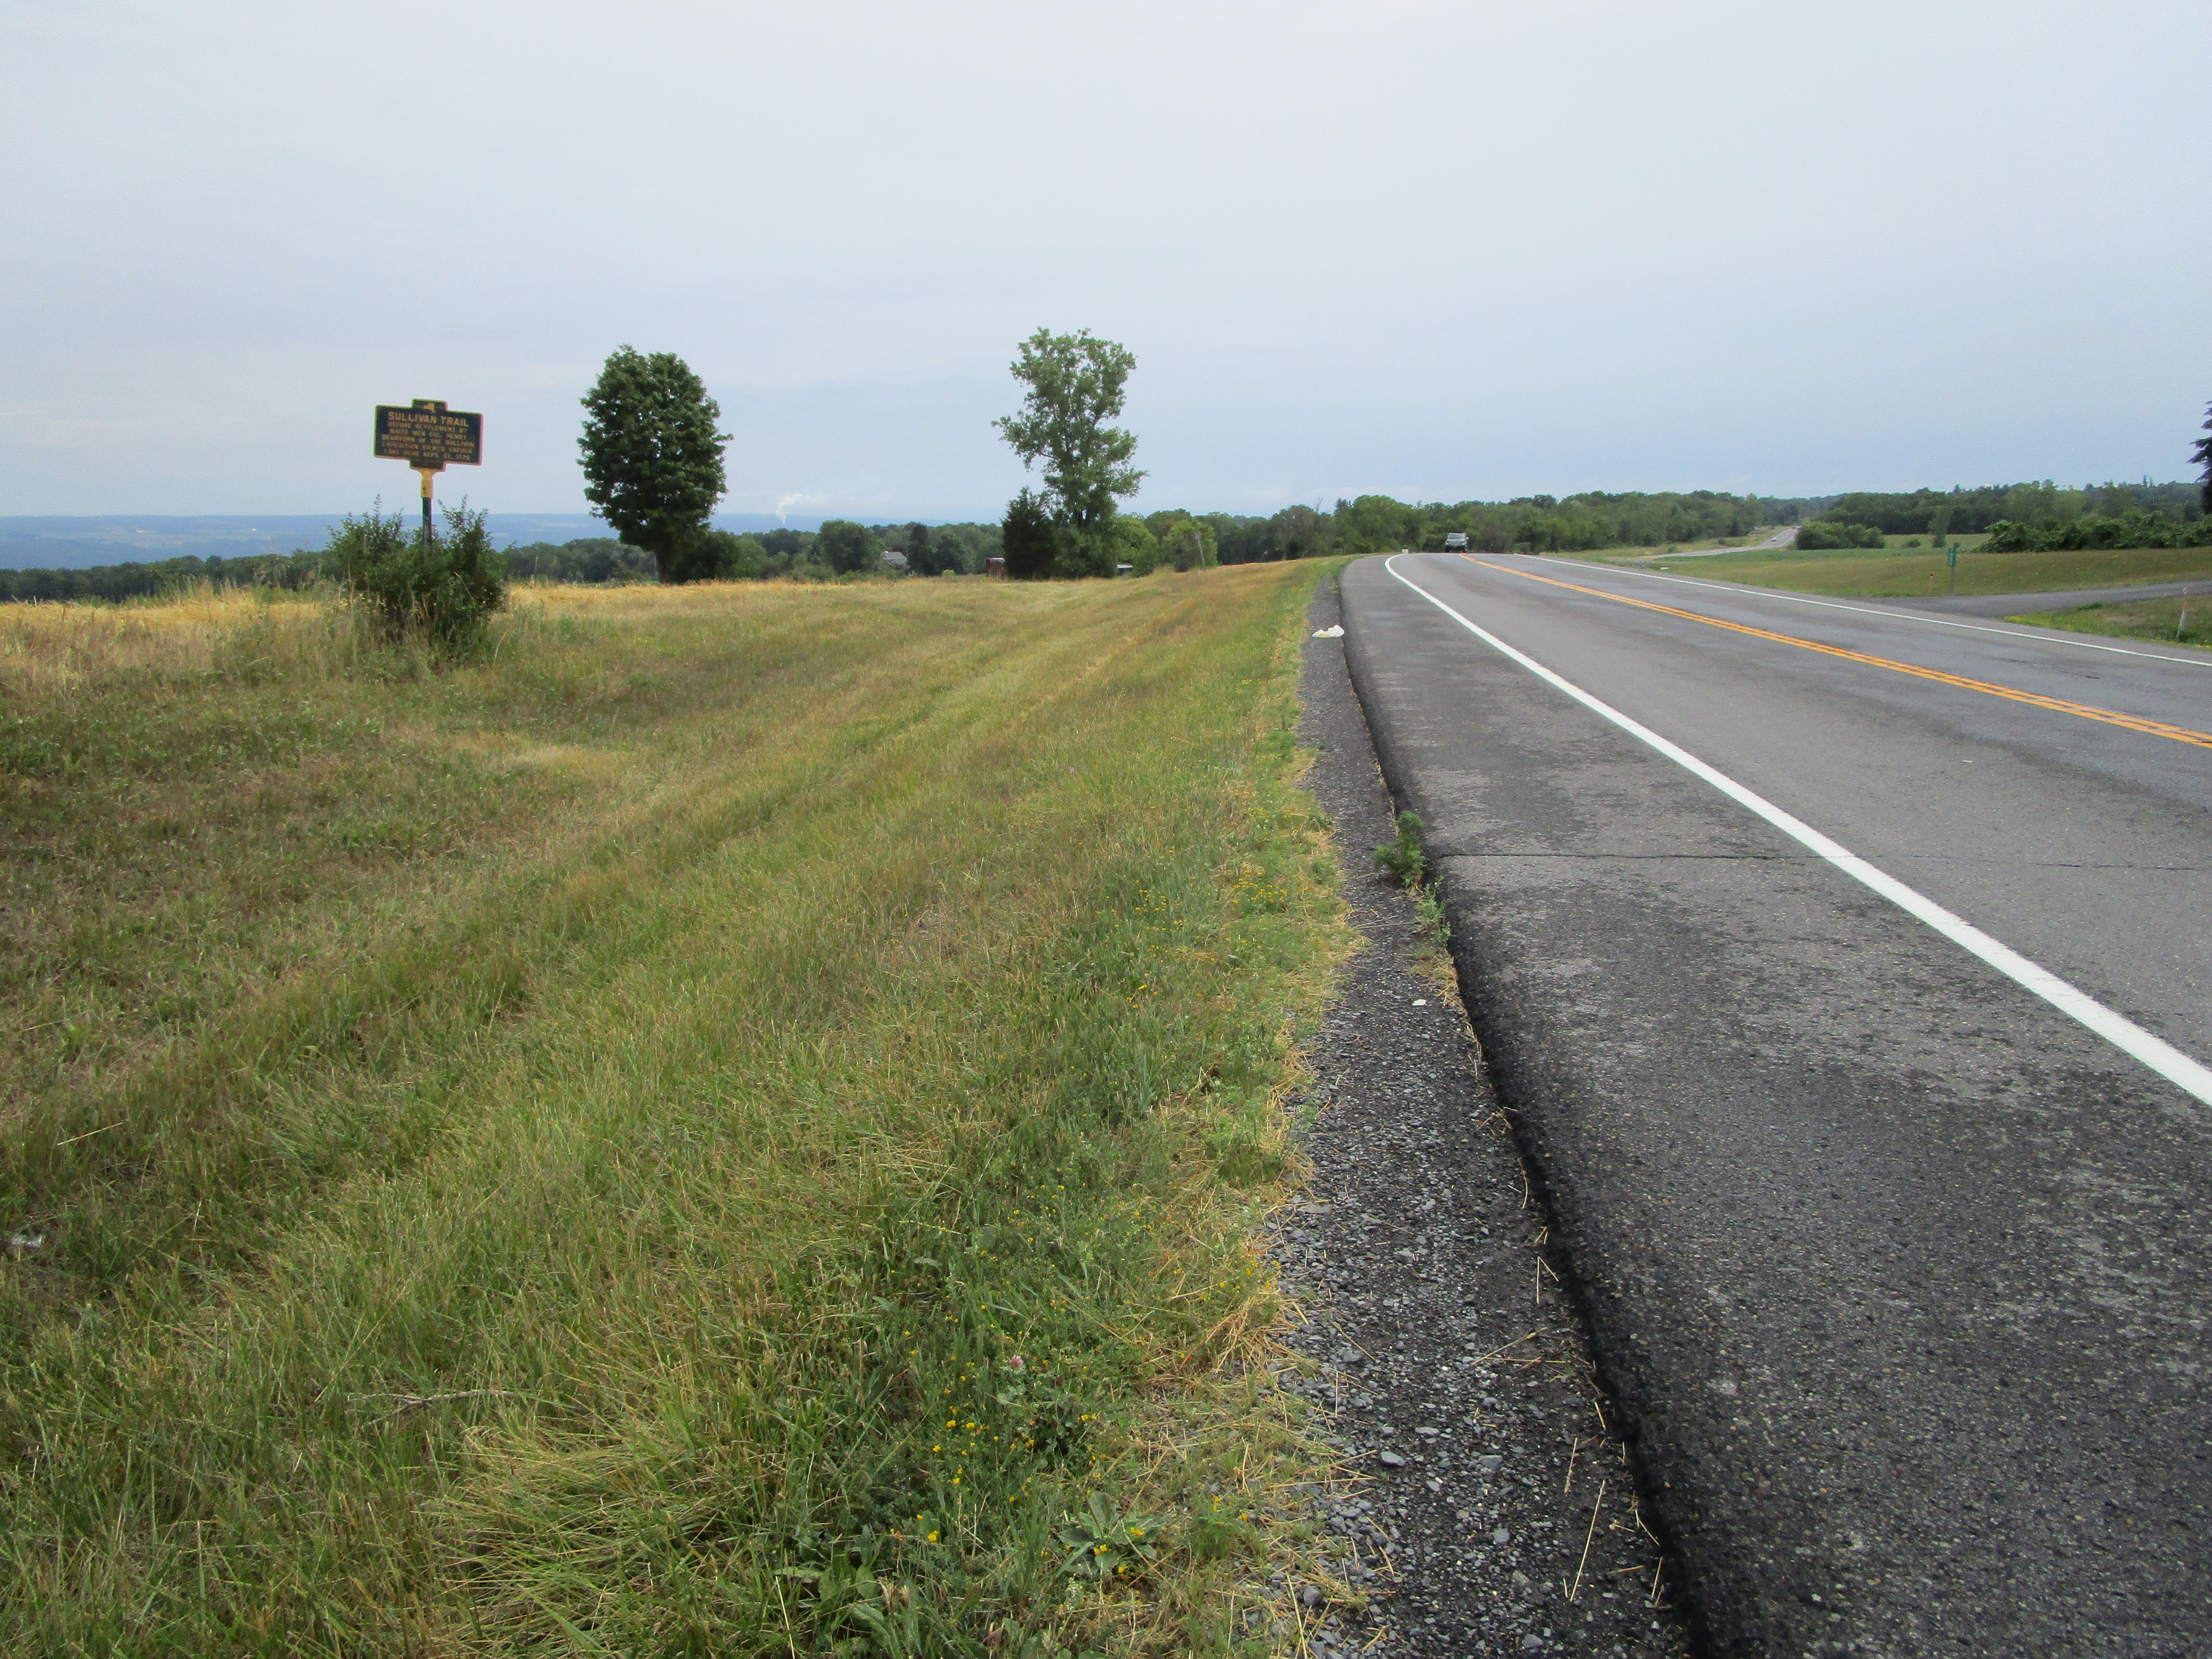 Southward on NY 96